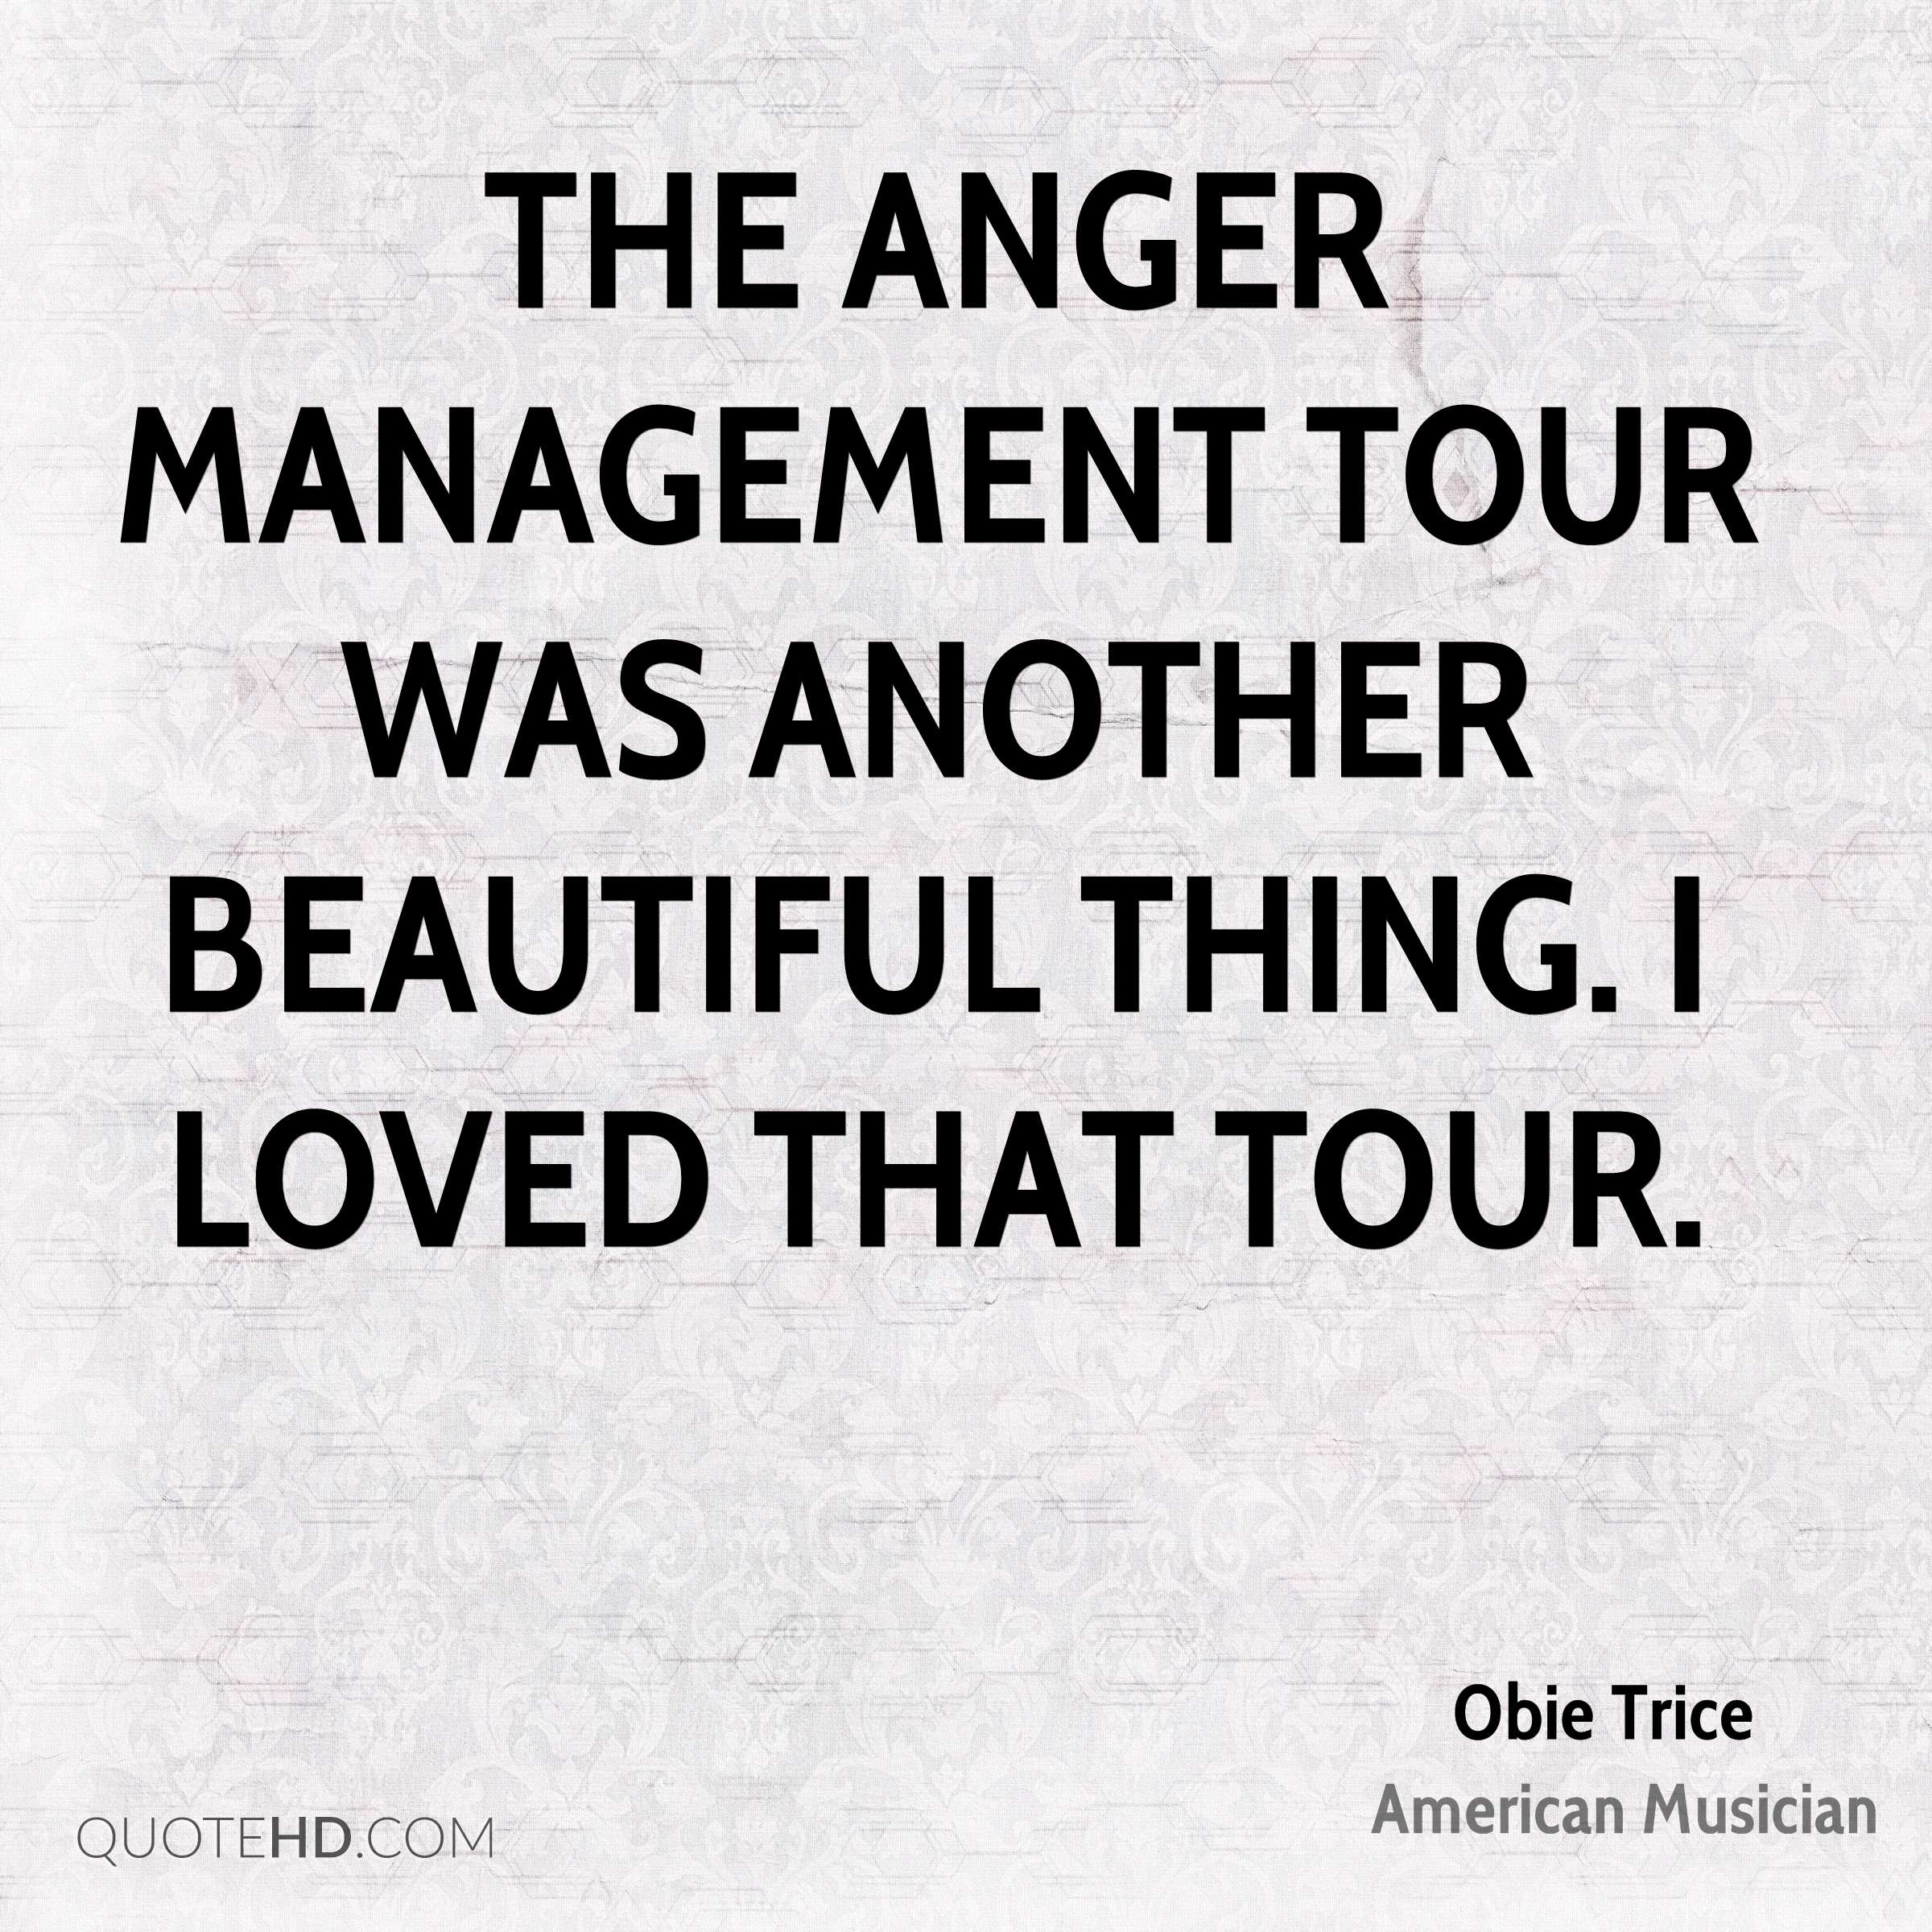 The Anger Management Tour was another beautiful thing. I loved that tour.